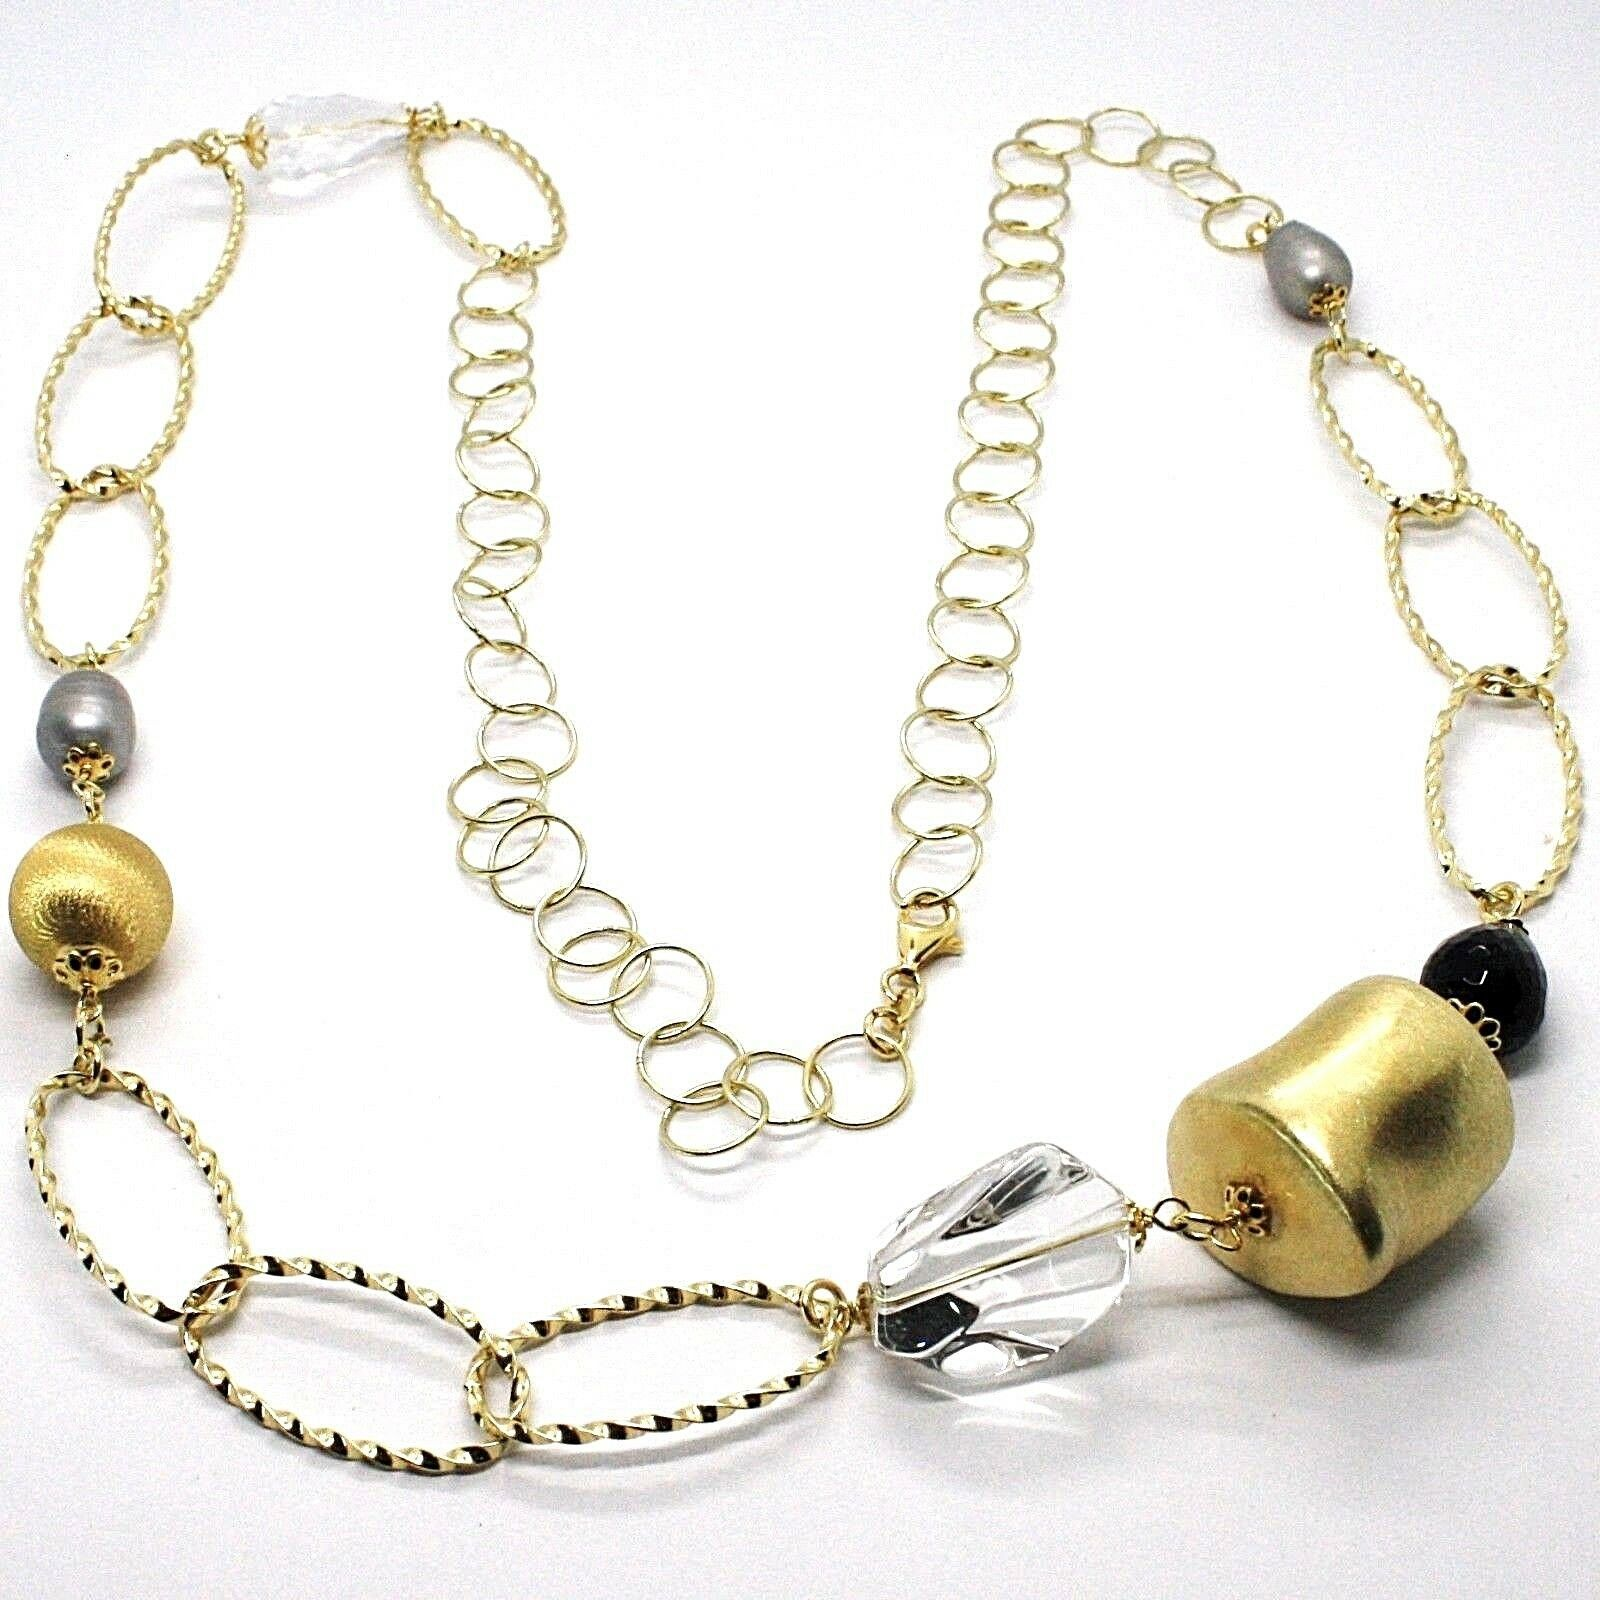 SILVER 925 NECKLACE, YELLOW, ONYX, PEARLS GREY, OVALS TWISTED, 95 CM